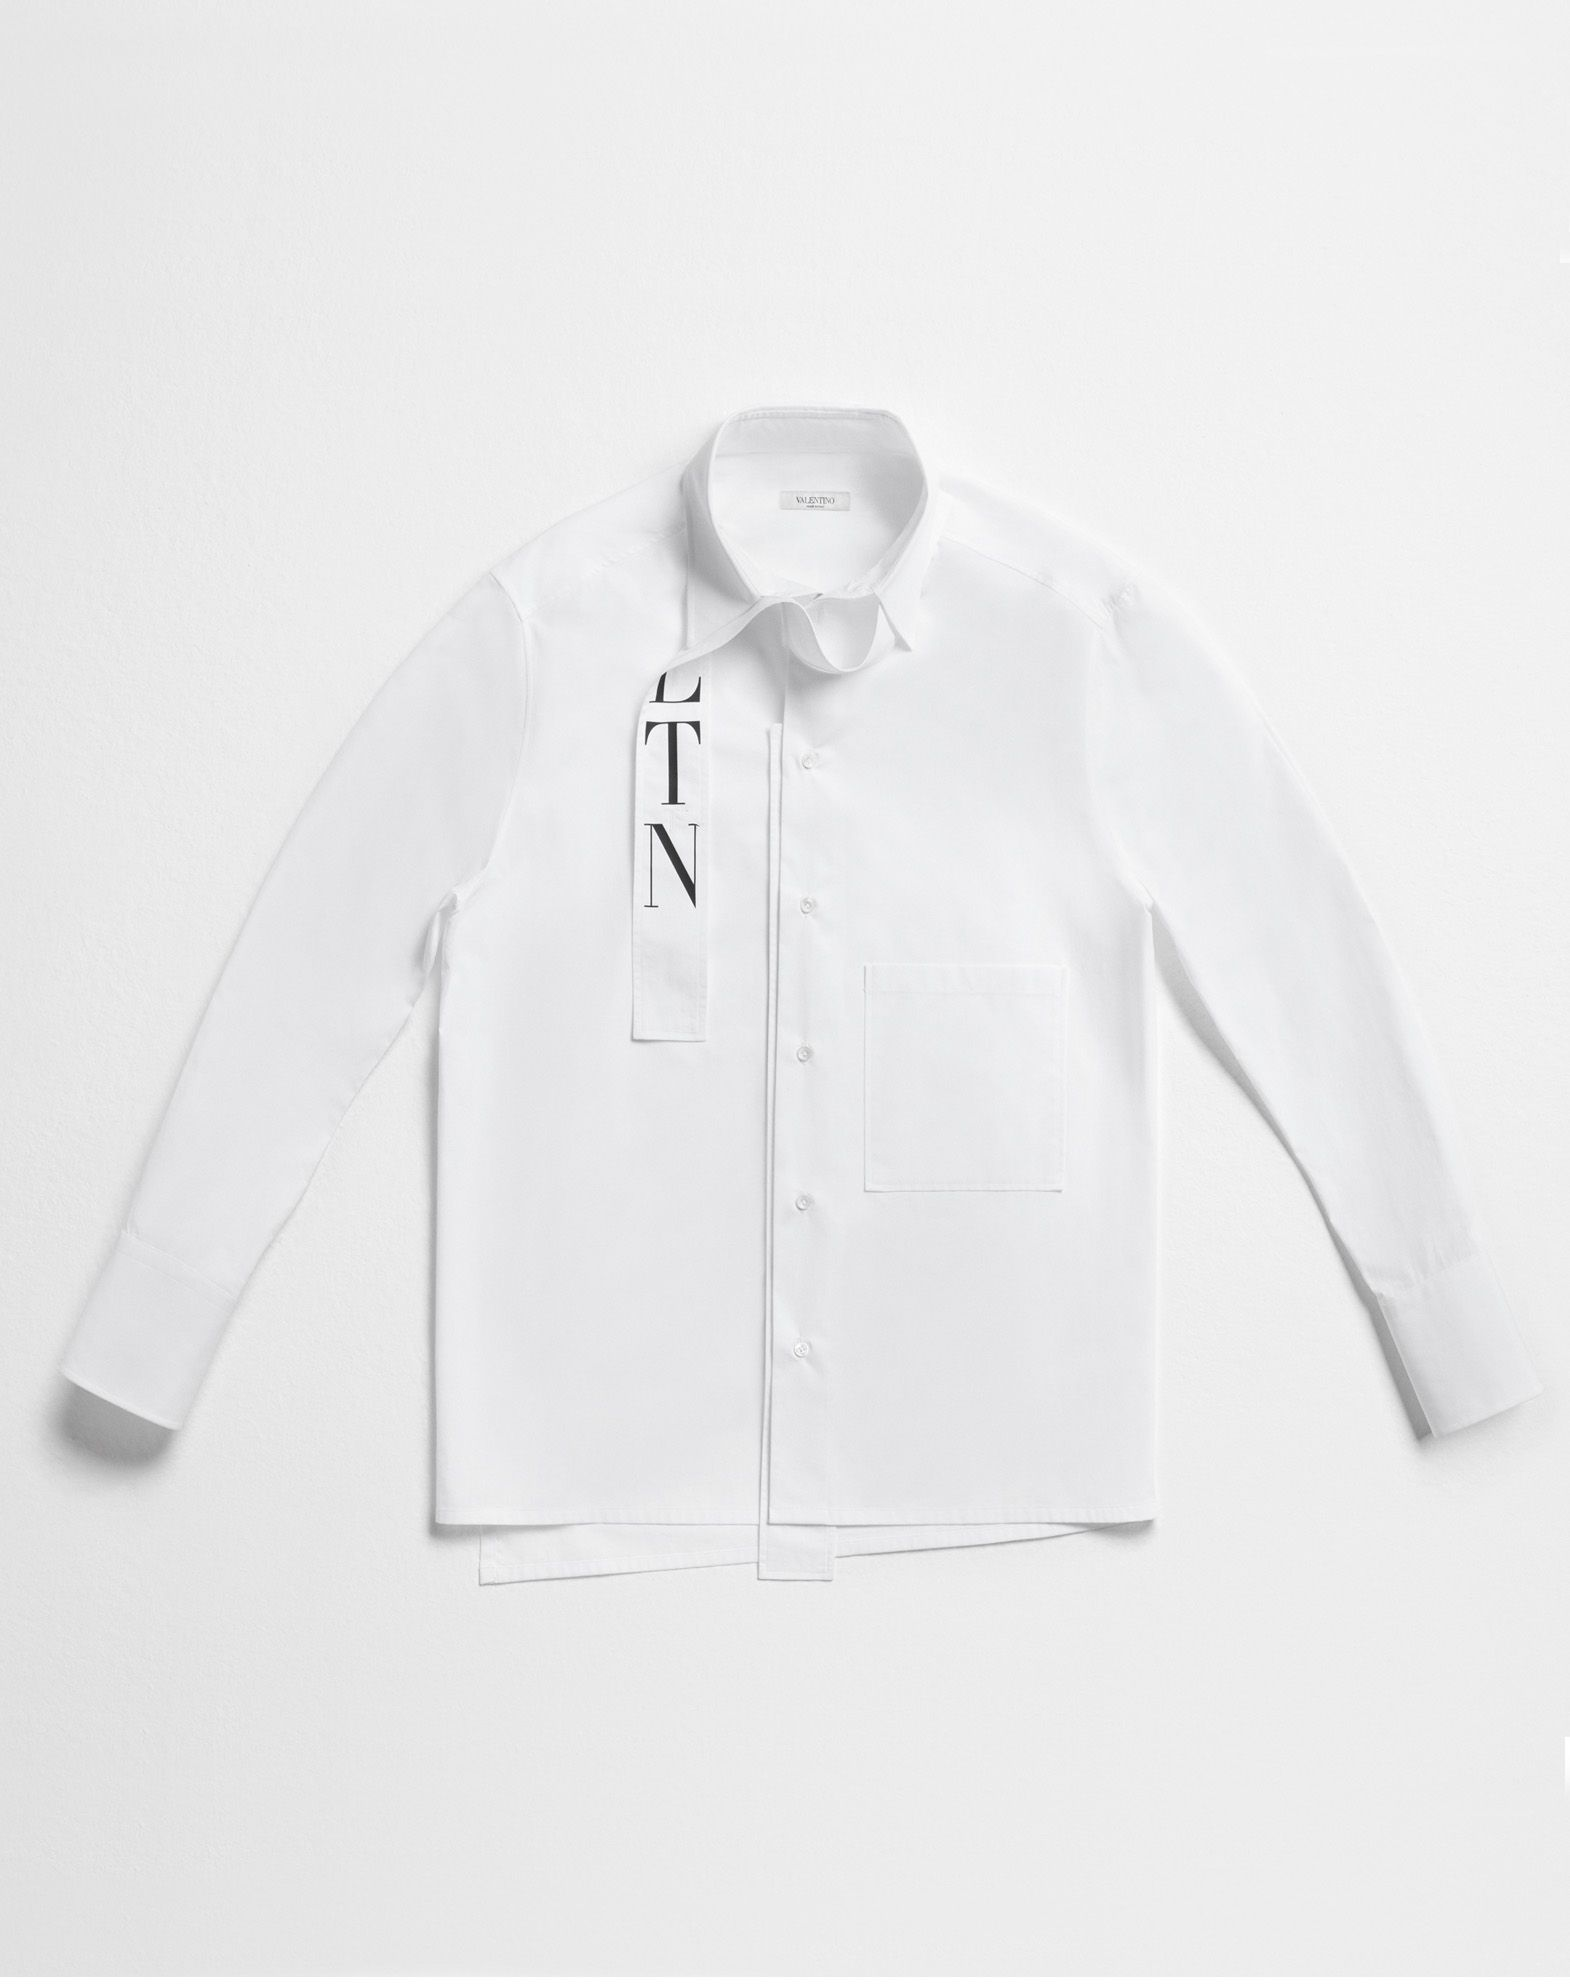 VALENTINO VLTN shirt with tie collar Shirt U l